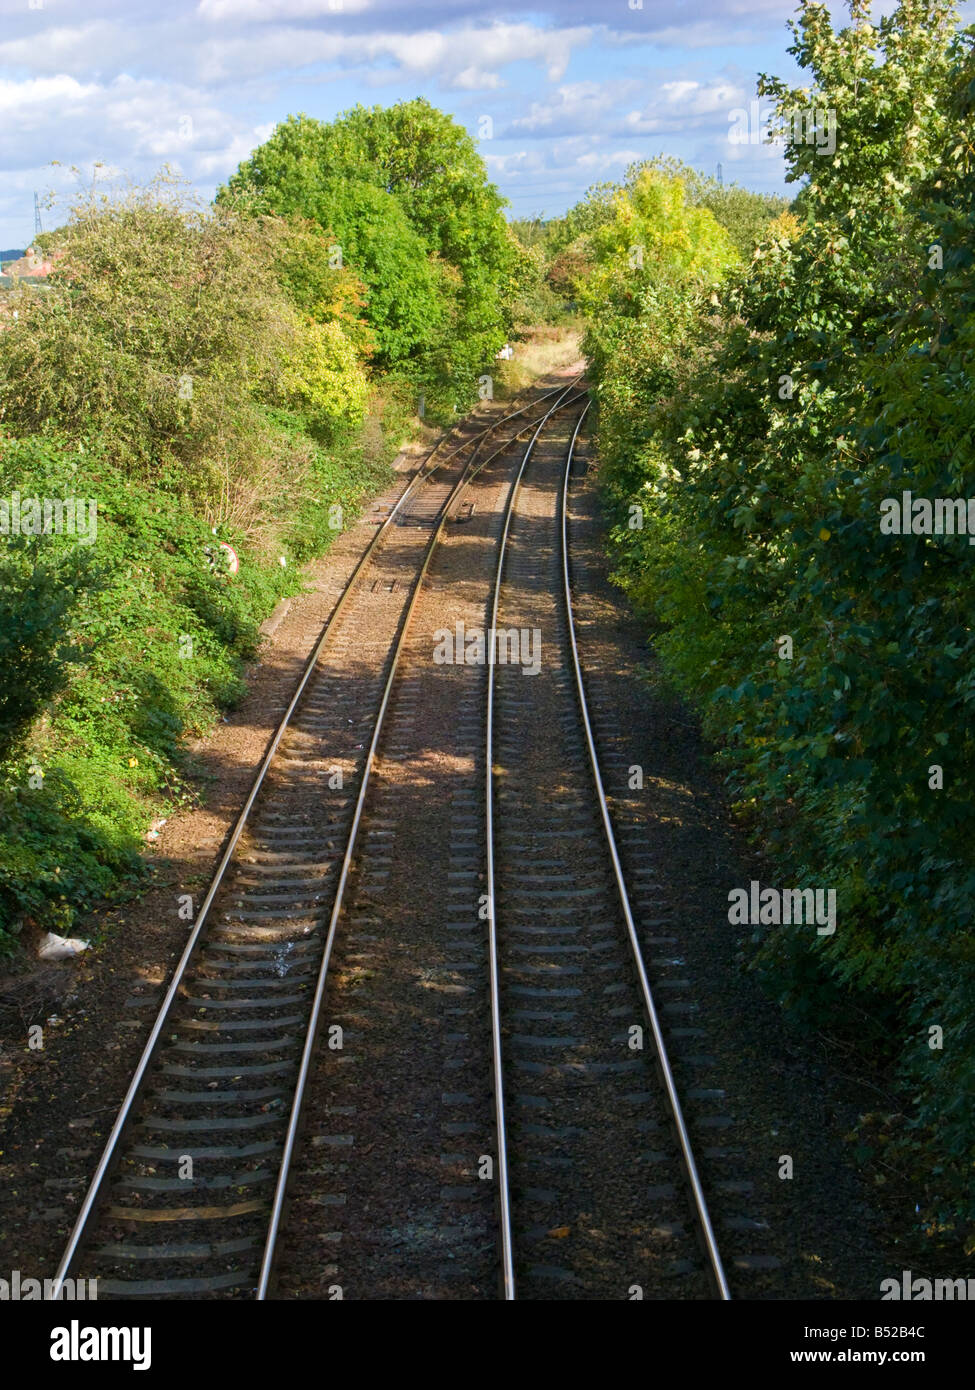 Looking down to railway tracks and leafy cutting in rural England, UK - Stock Image